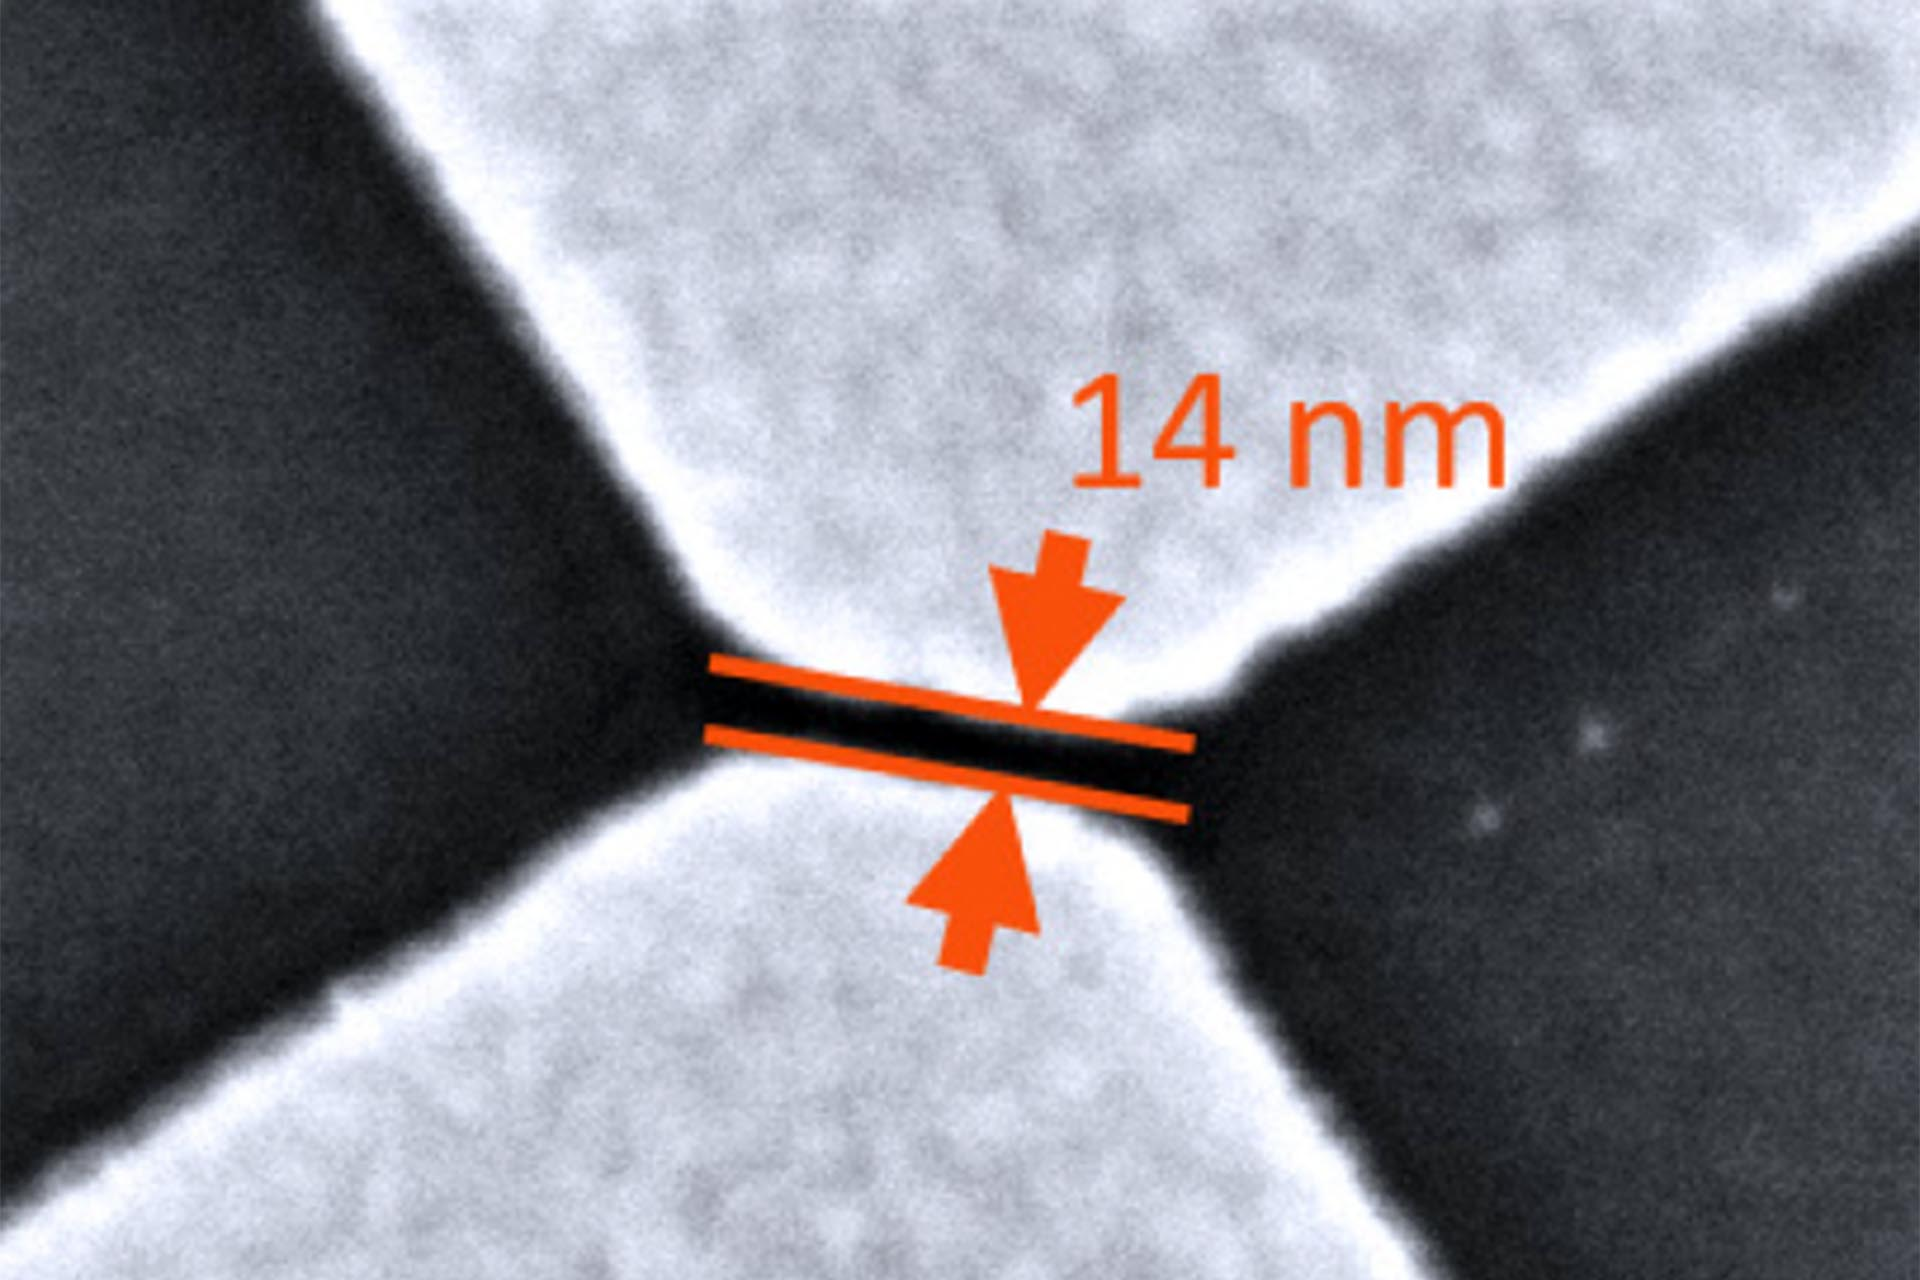 Gap between two metal electrodes made with NanoFrazor lithography in PPA resist and a simple lift-off process.